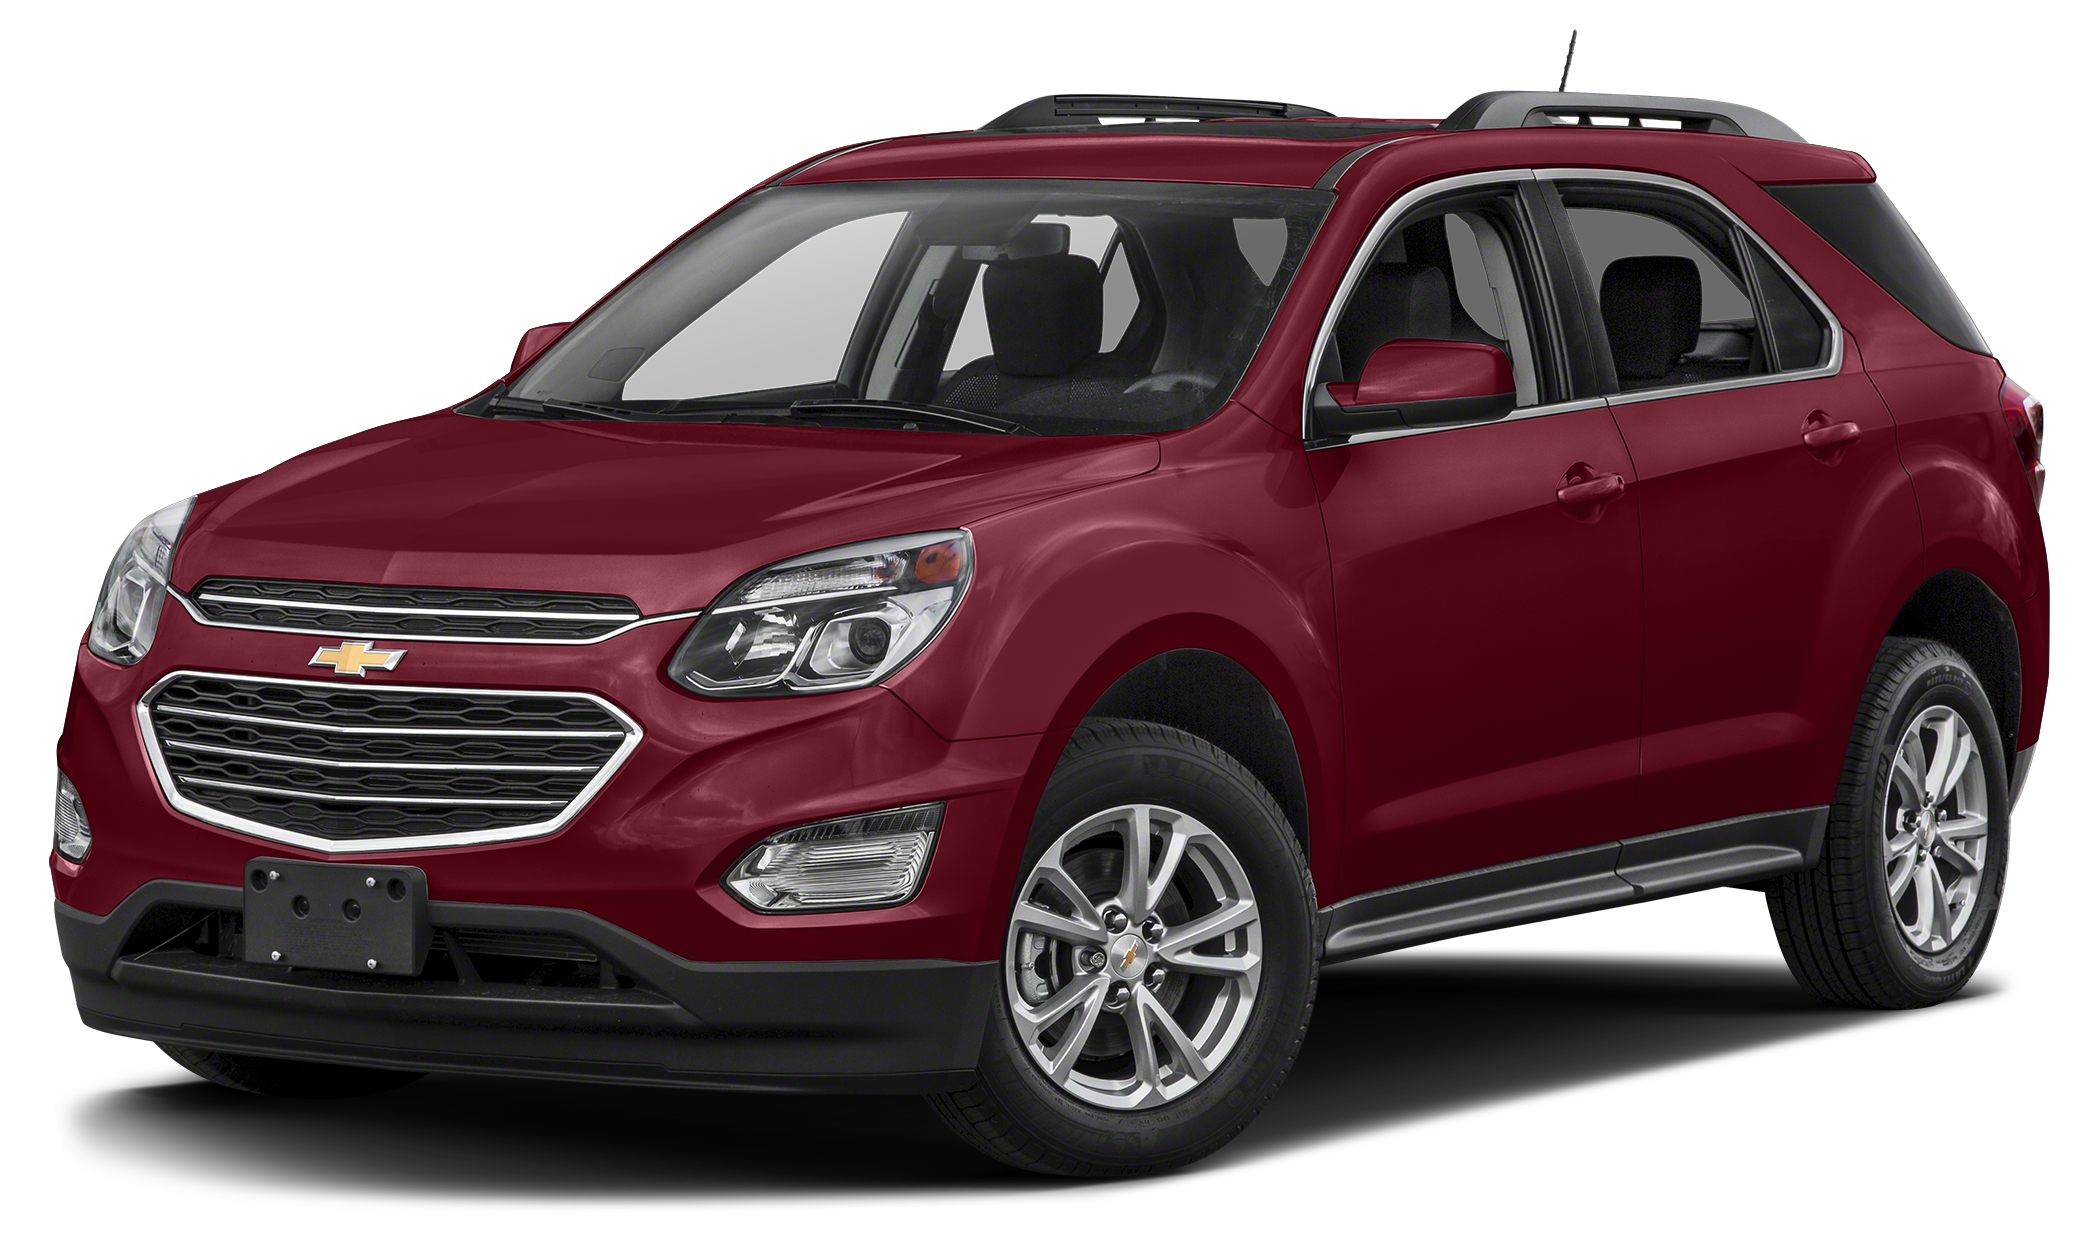 2017 Chevrolet Equinox LT The 2017 Chevrolet Equinox is a perfect combination of style and versati